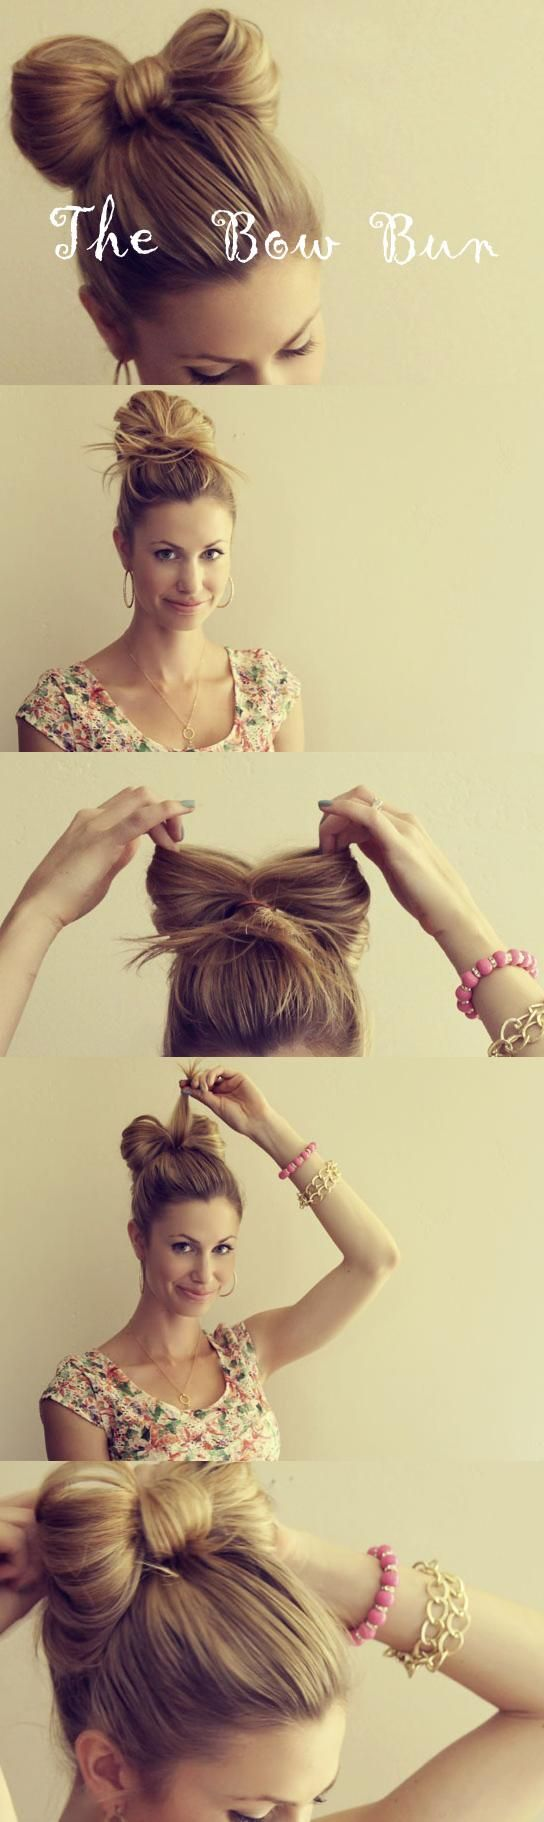 how to make a bow bun.